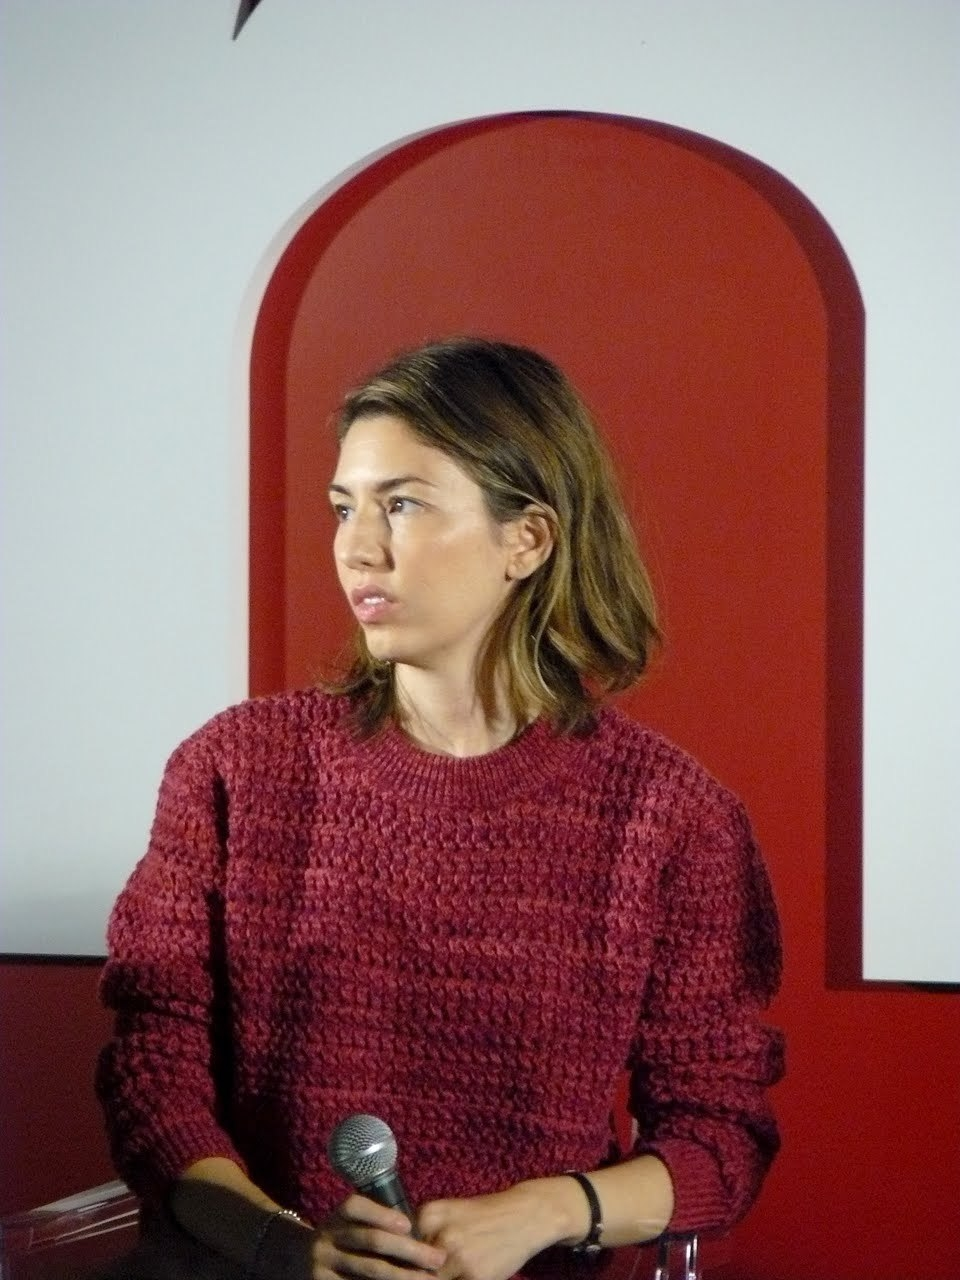 Sofia Coppola Net Worth